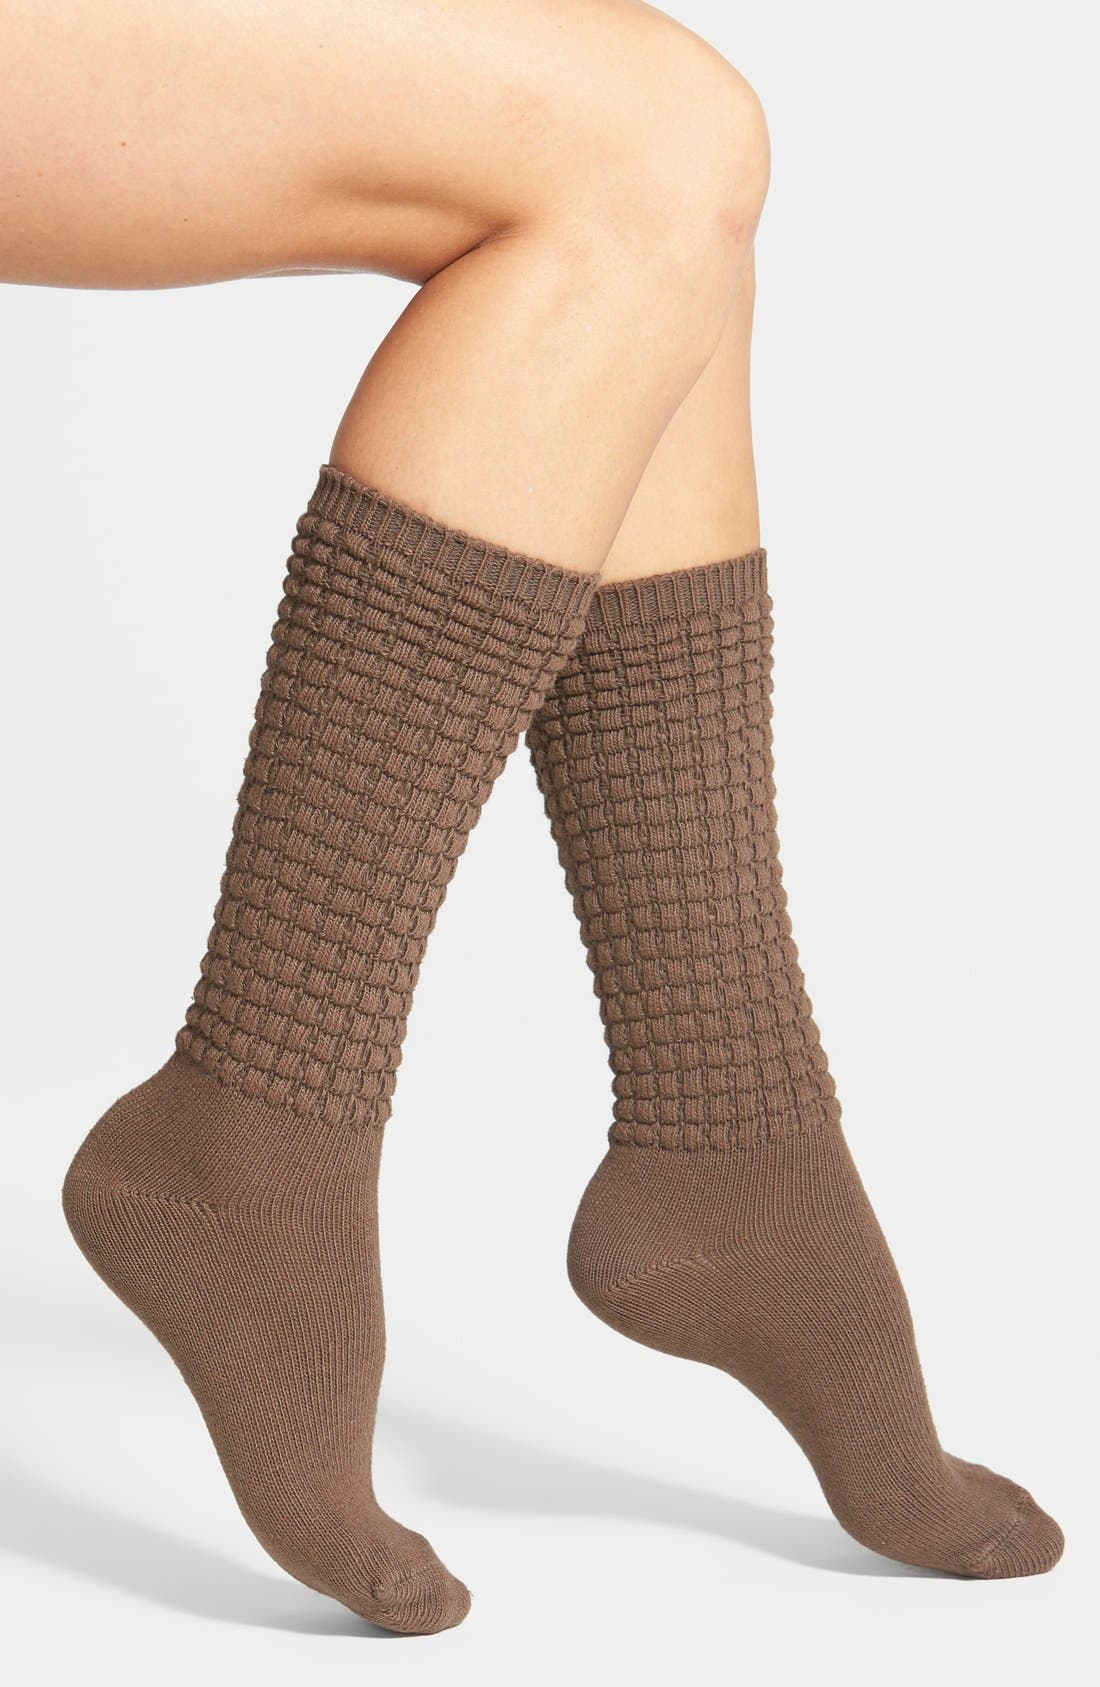 Alternate Image 1 Selected - Hue Textured Knit Socks